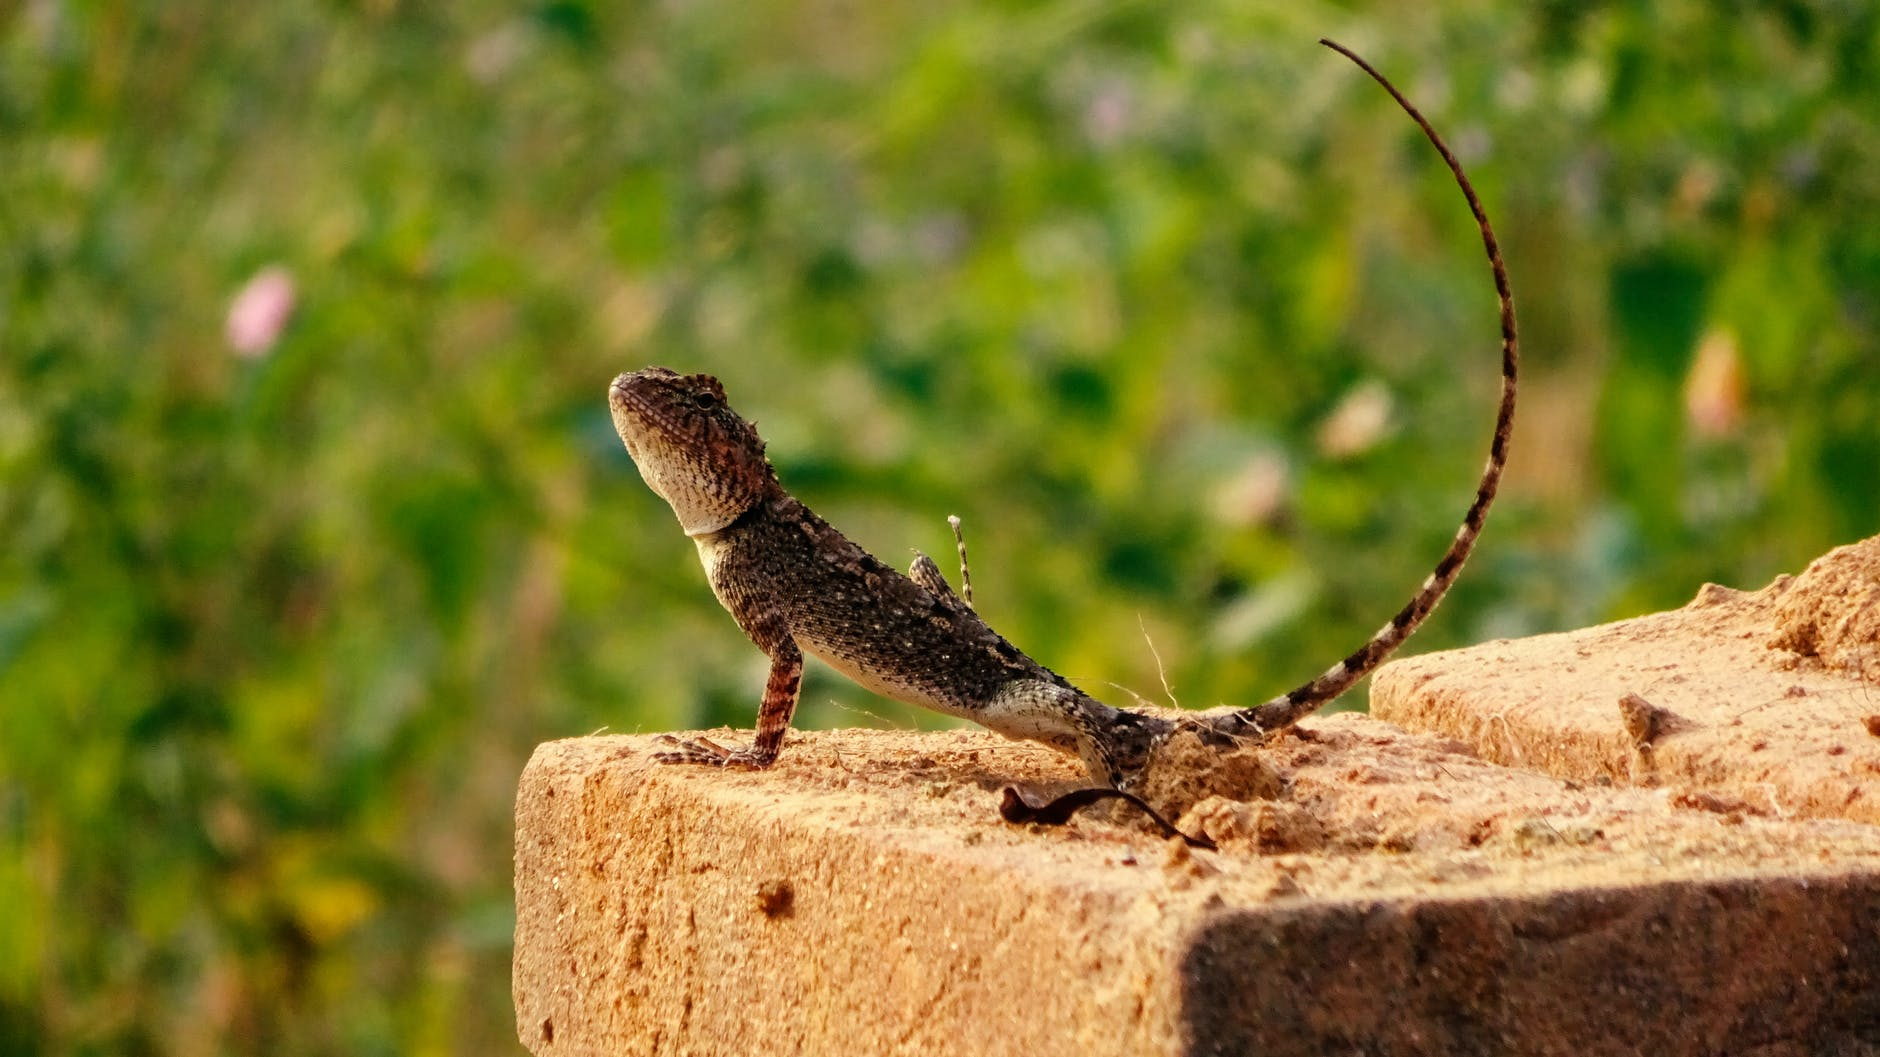 How to Get Rid of Lizards at Home Without Killing Them